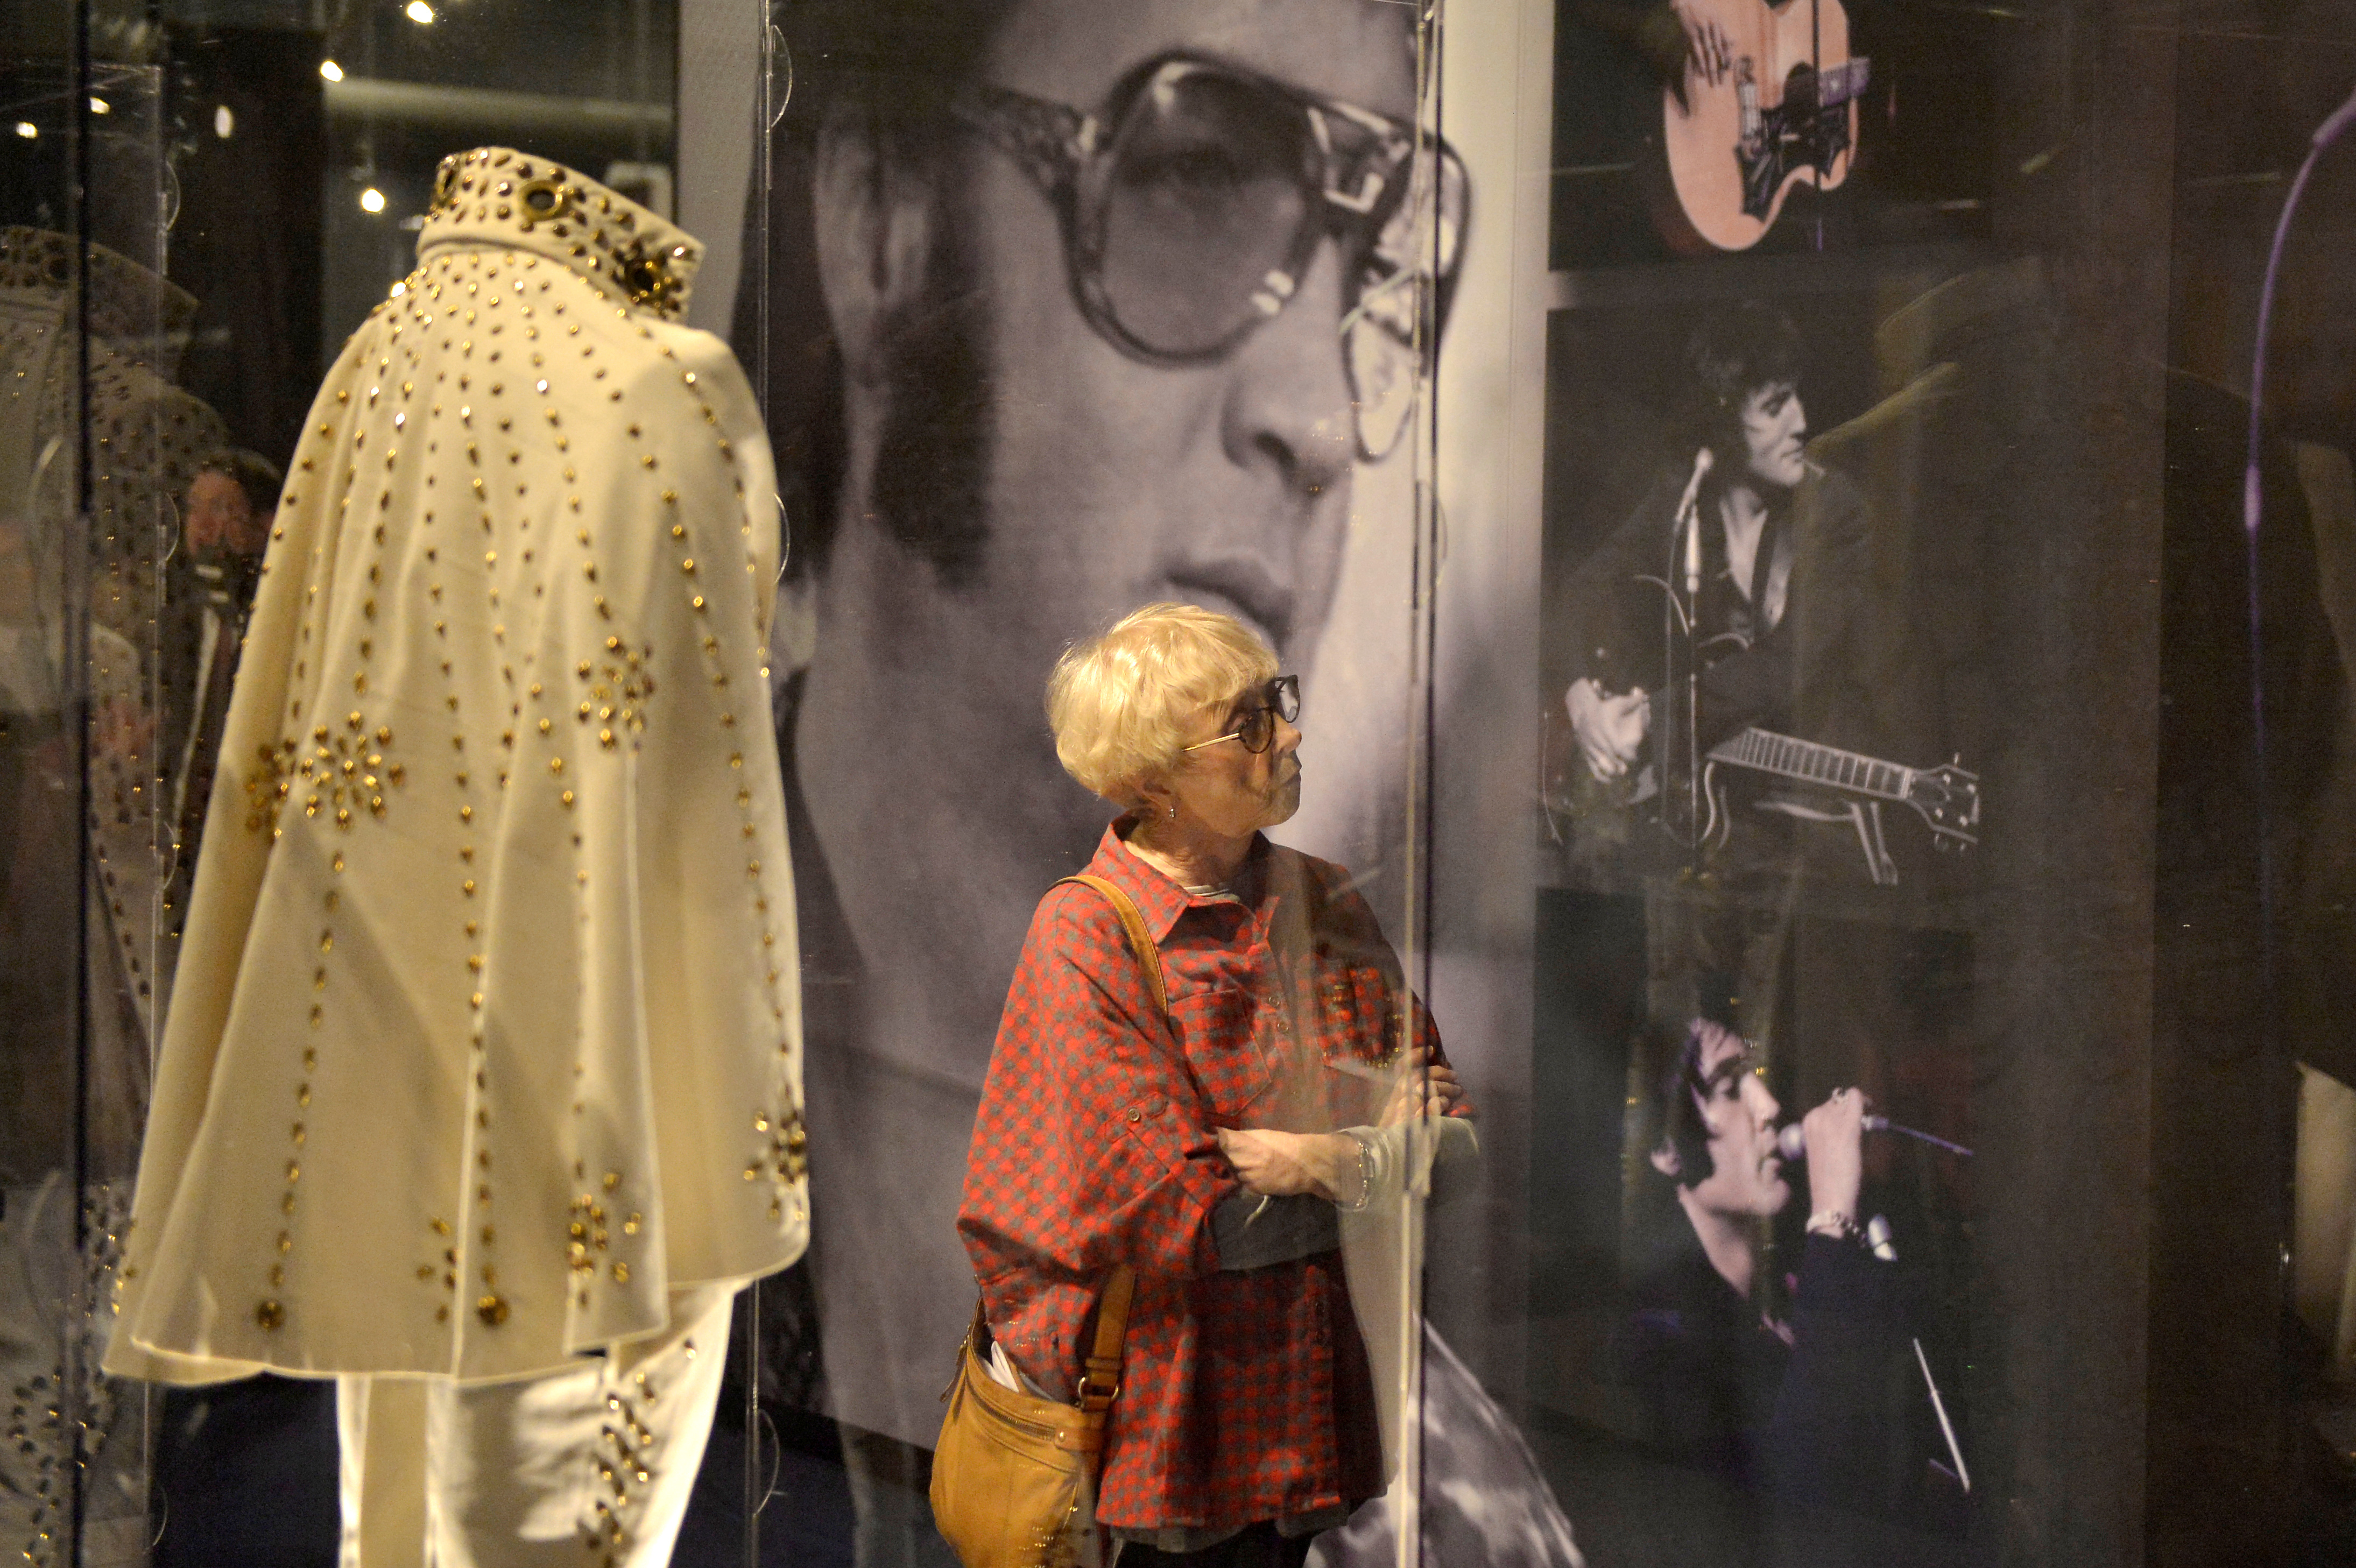 Betty Miller looks at an exhibit of Elvis Presley paraphernalia. Photo by Brandon Dill/Reuters